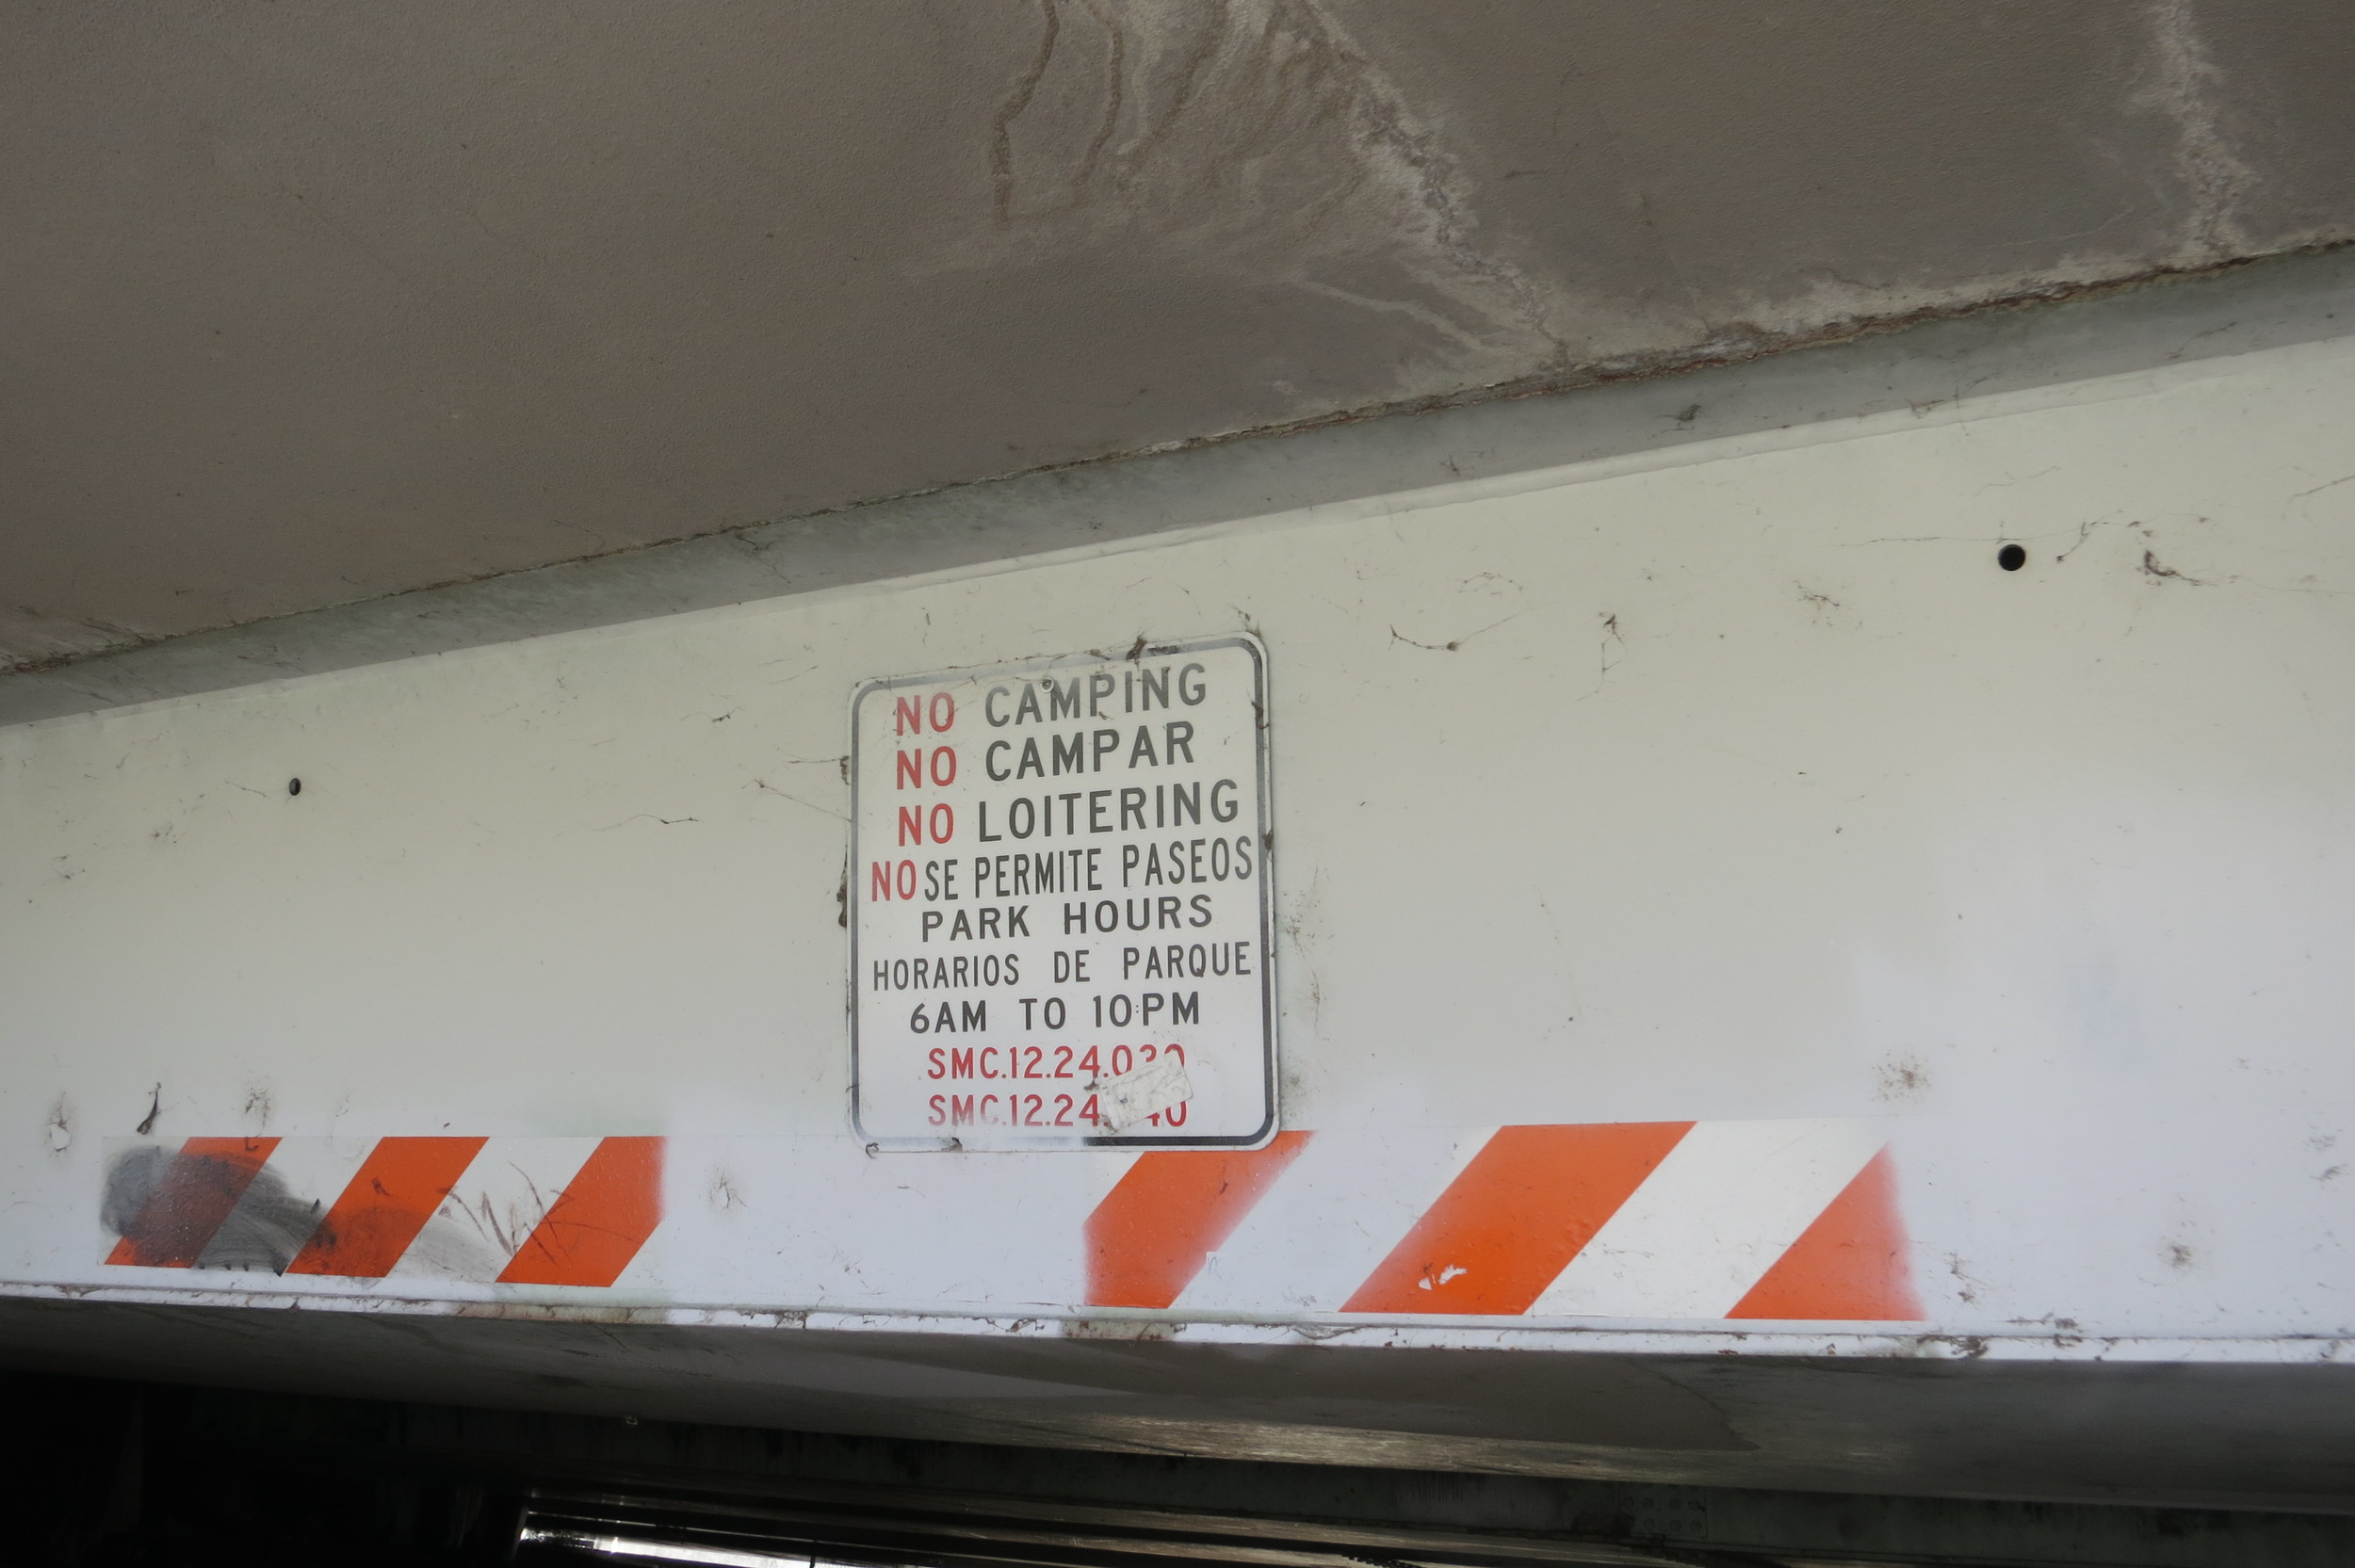 Homeless have also been sleeping under this bridge despite these signs. Jay believes there should be some designated areas they should be allowed to sleep.